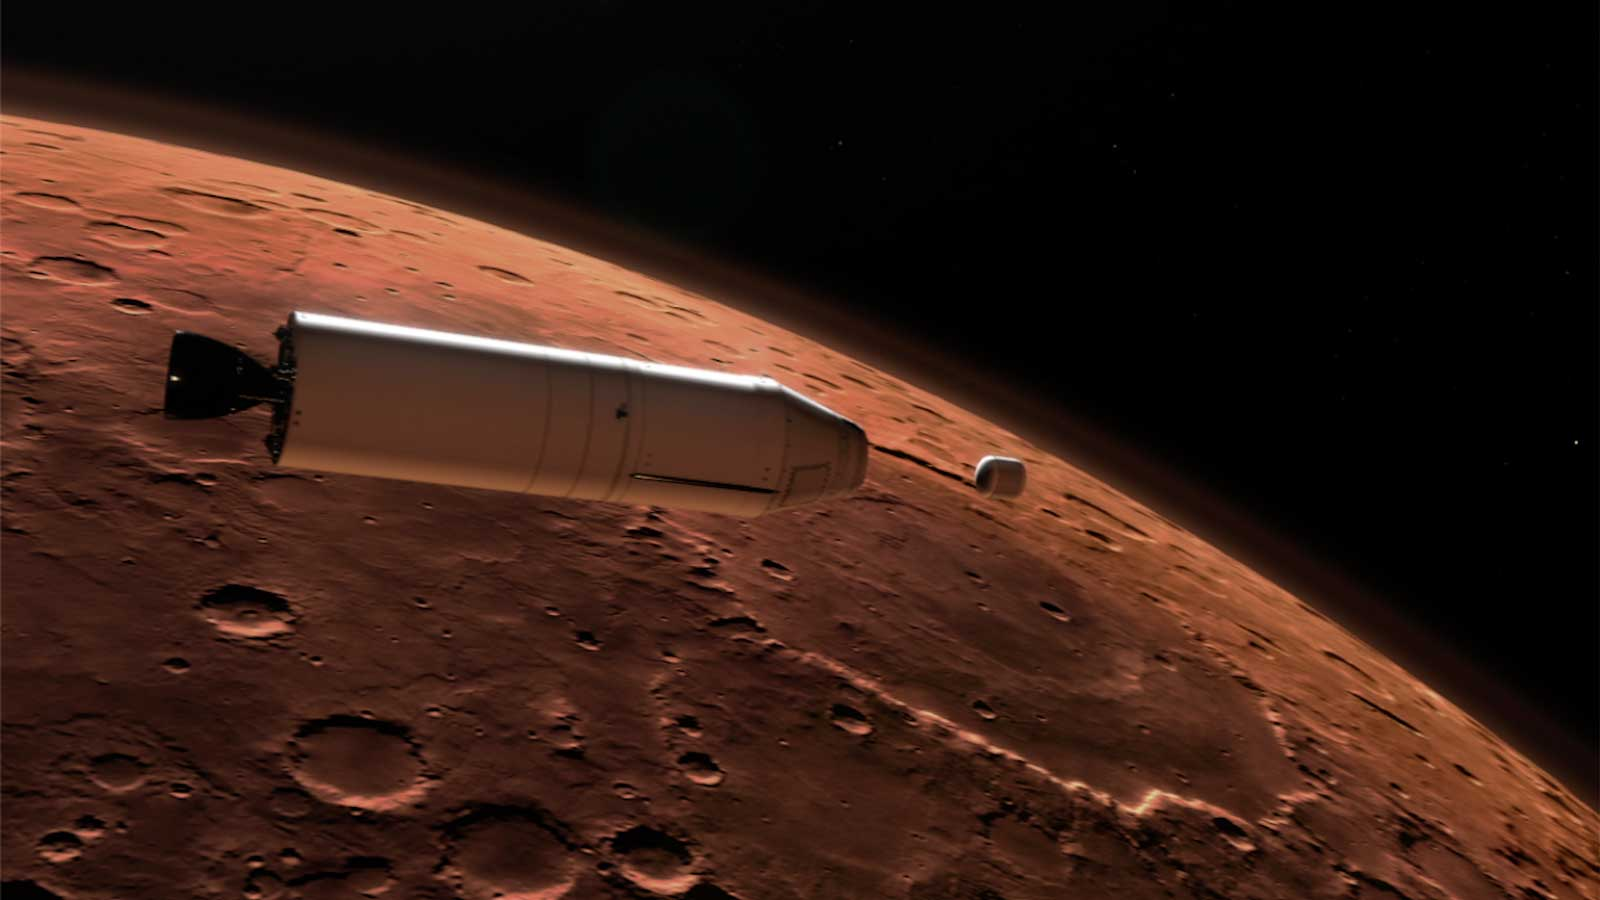 ​As part of a Mars sample return mission, a rocket will carry a container of sample tubes with Martian rock and soil samples into orbit around Mars and release it for pick up by another spacecraft.